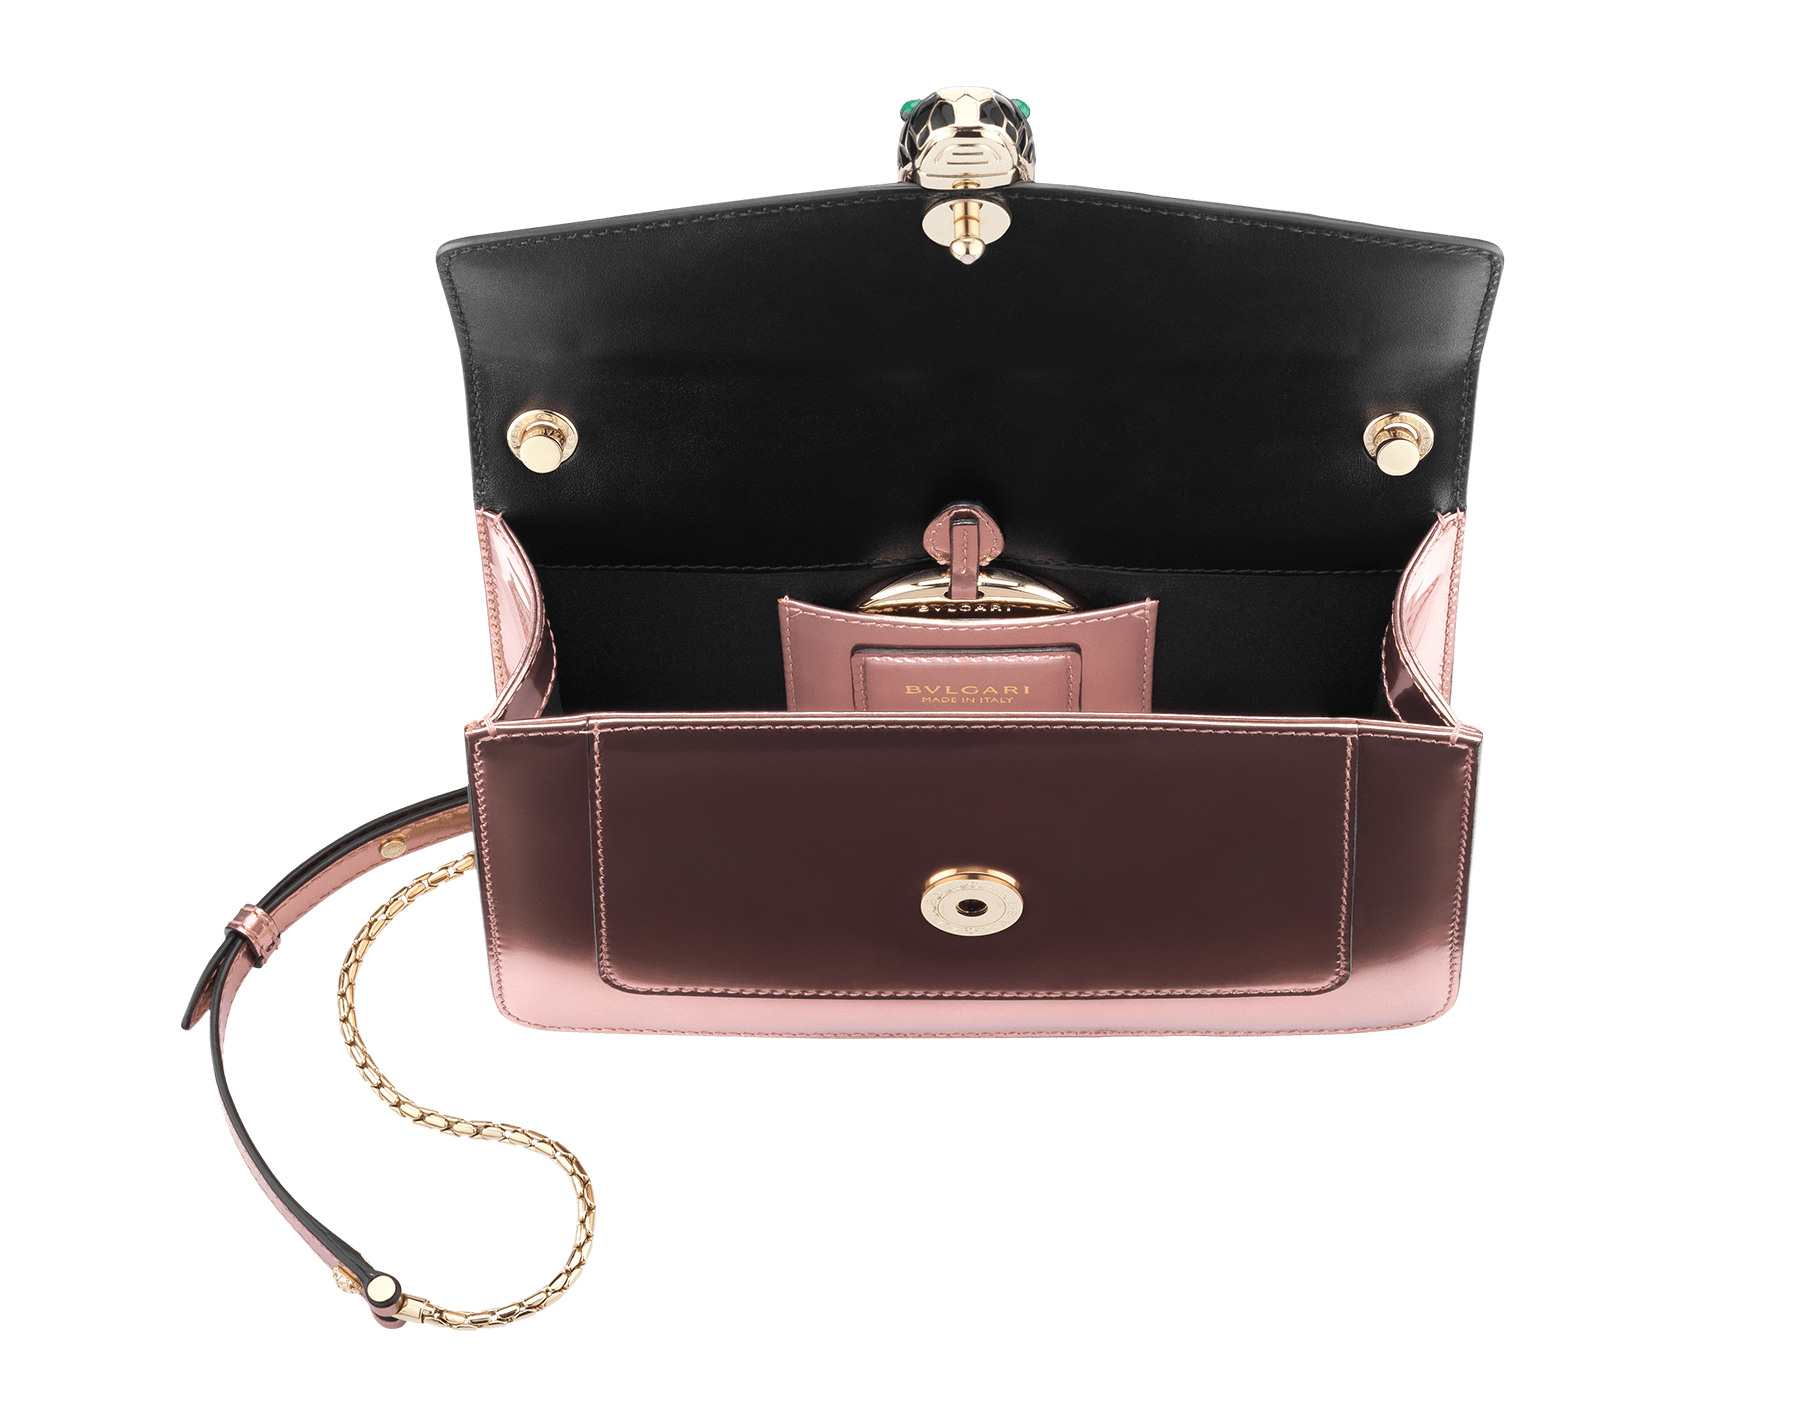 Flap cover bag Serpenti Forever in rose quartz brushed metallic calf leather. Brass light gold plated snake head closure in black and white enamel, with eyes in green malachite. 284801 image 2